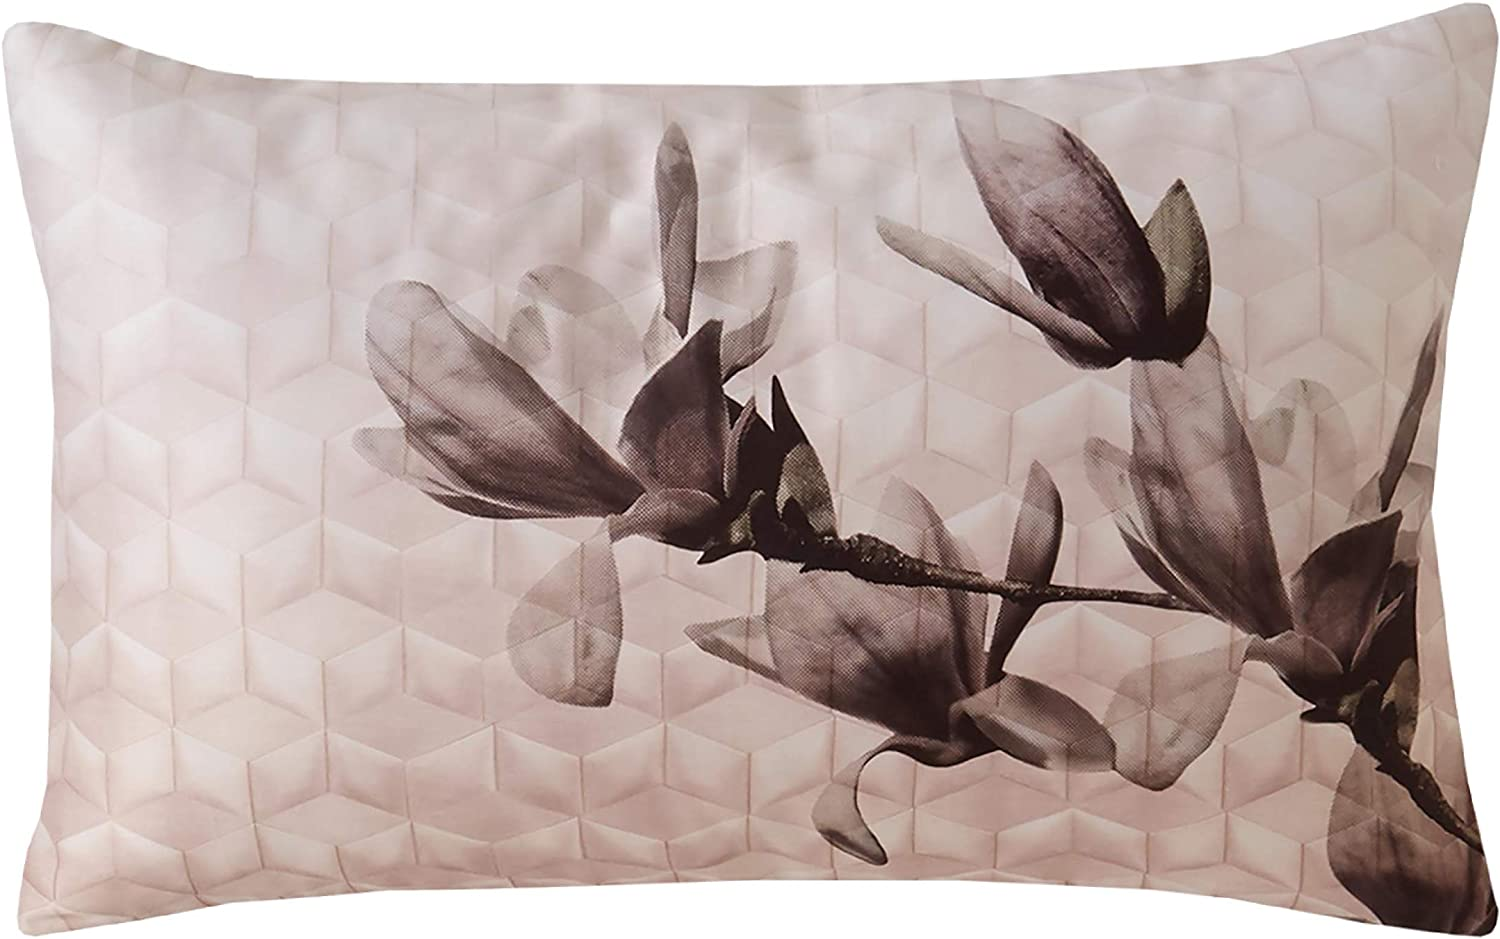 Shop Karl Lagerfeld Pillowcases up to